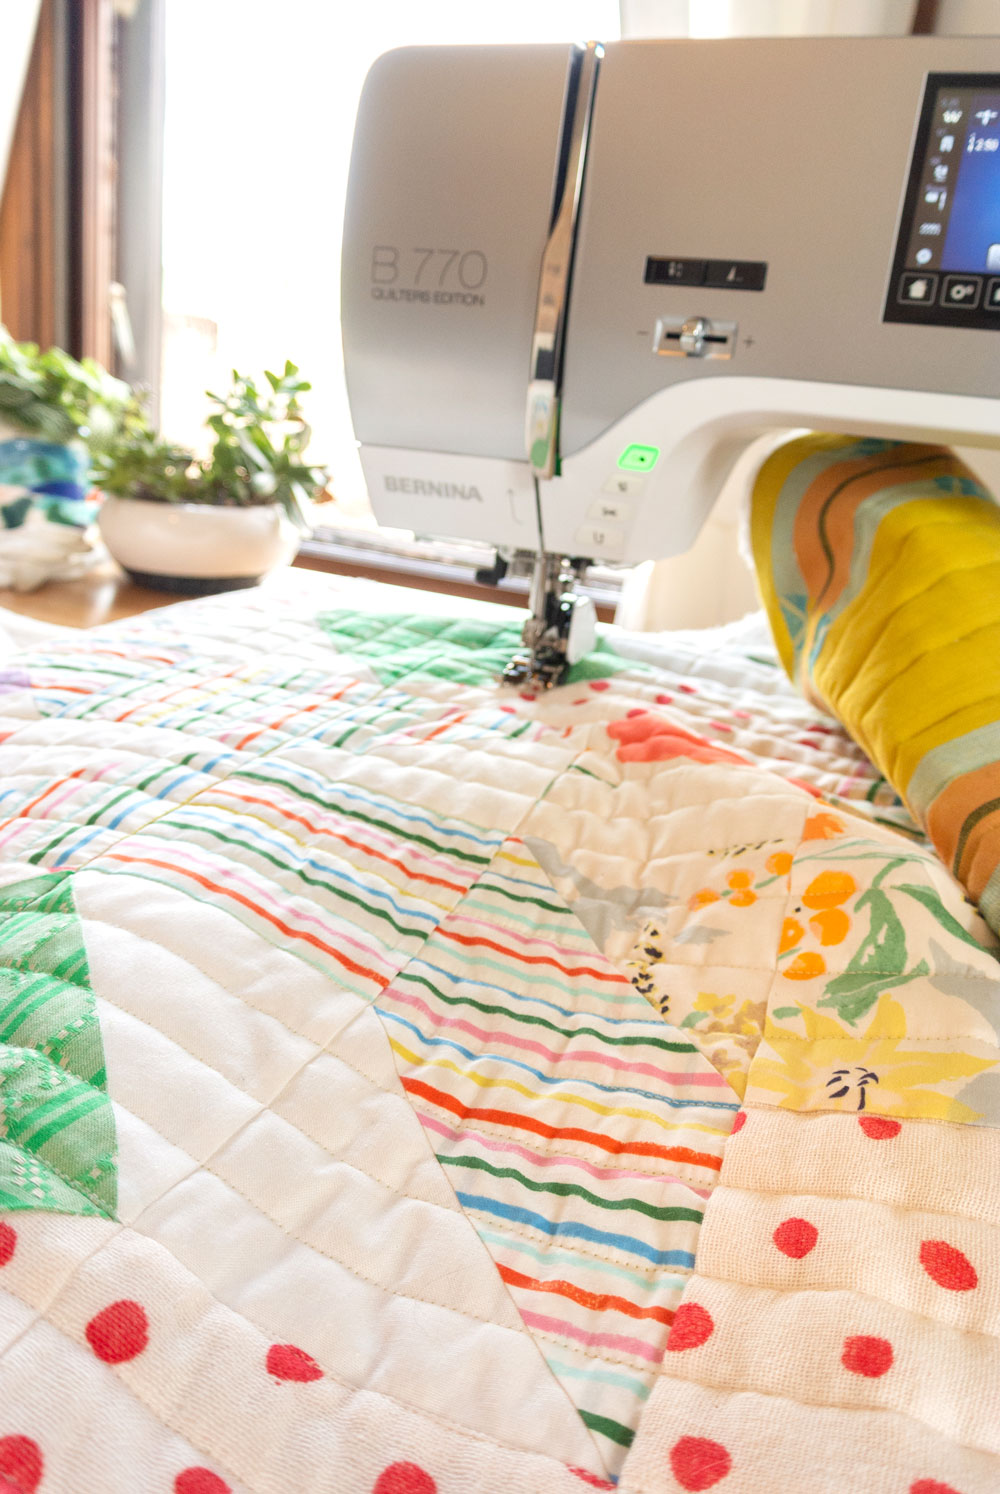 Learn the 6 simple steps to straight line quilting, or as some call it, matchstick quilting. This is a great beginner quilter tutorial!   Suzy Quilts - https://suzyquilts.com/6-tips-for-straight-line-machine-quilting-a-k-a-matchstick-quilting